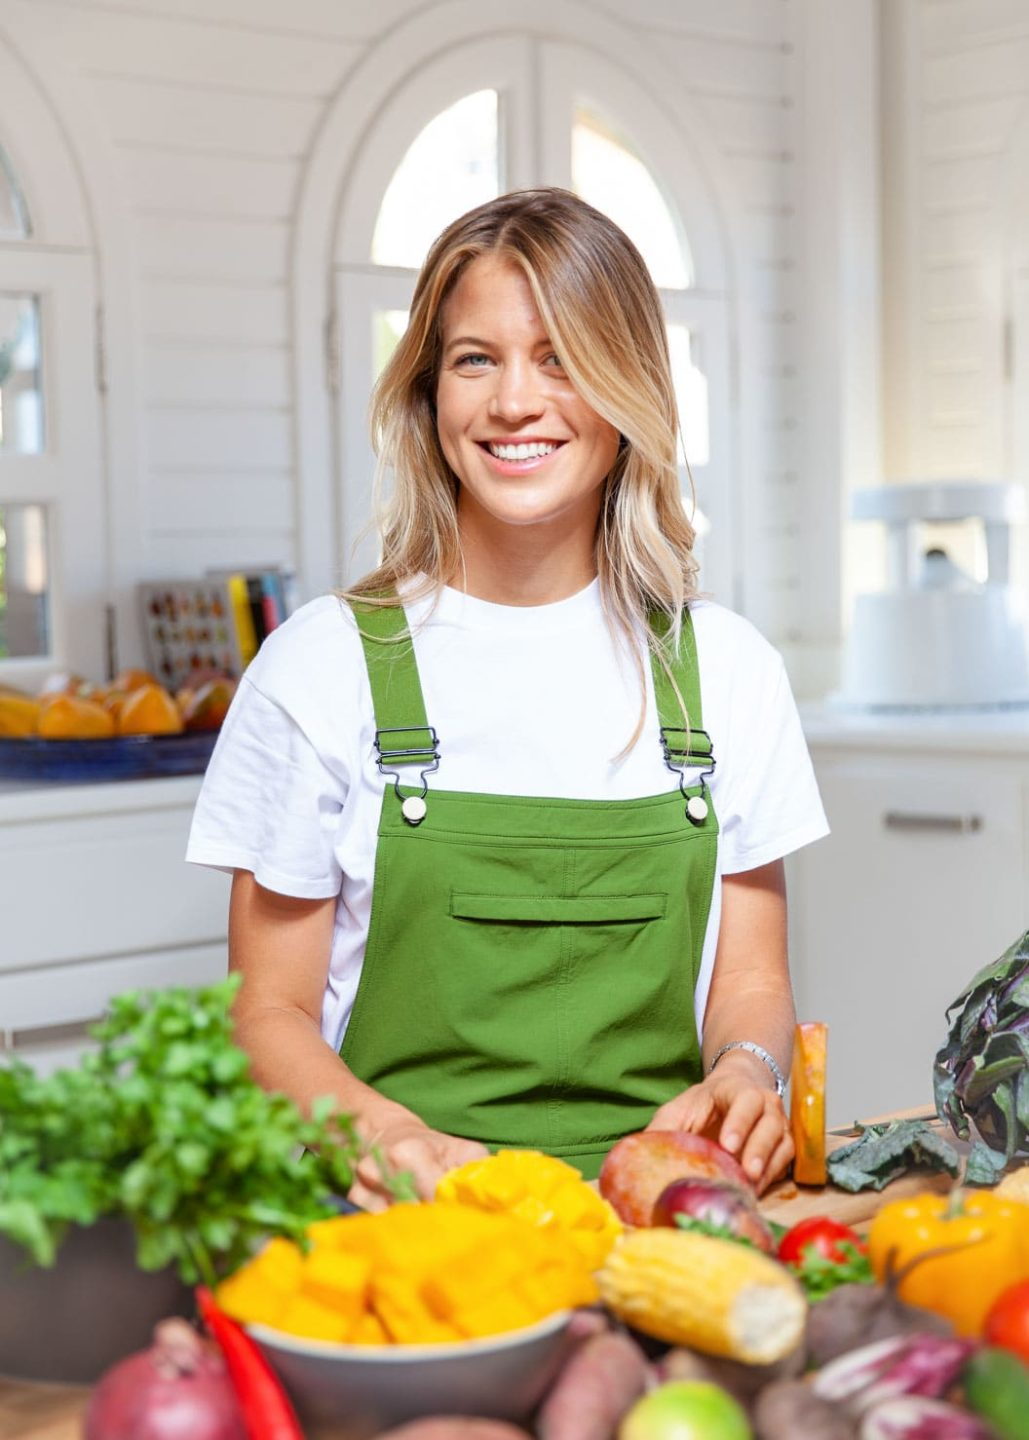 Young blonde woman wearing a white t-shirt and green dugarees smiles to the camera standing behind a table piled with colourful fresh fruit and vegetables